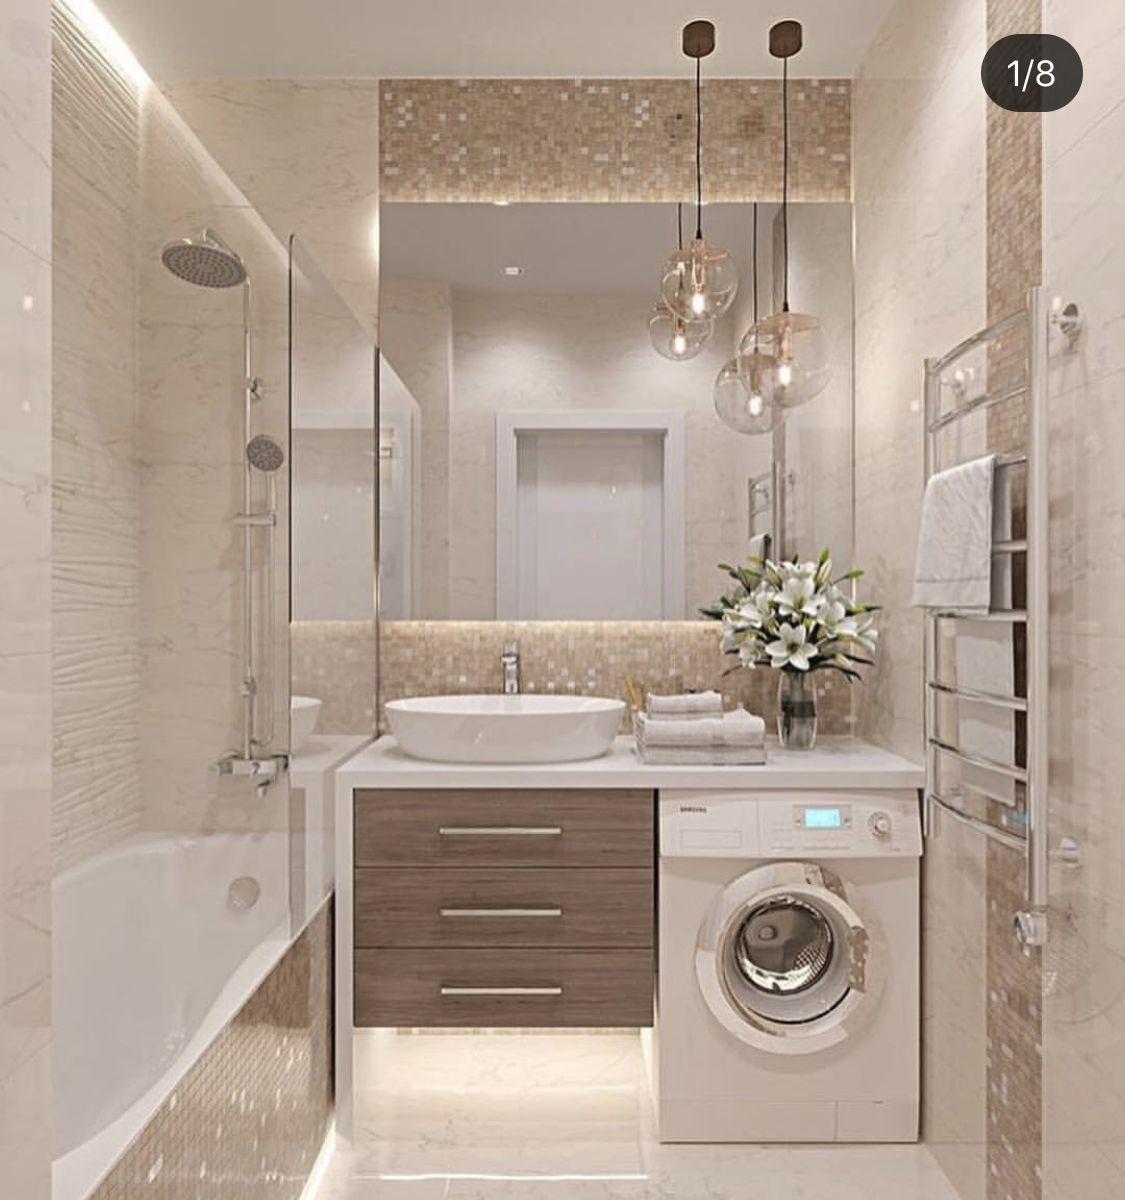 Pin By Anca Ank On Interior Designs (With Images)